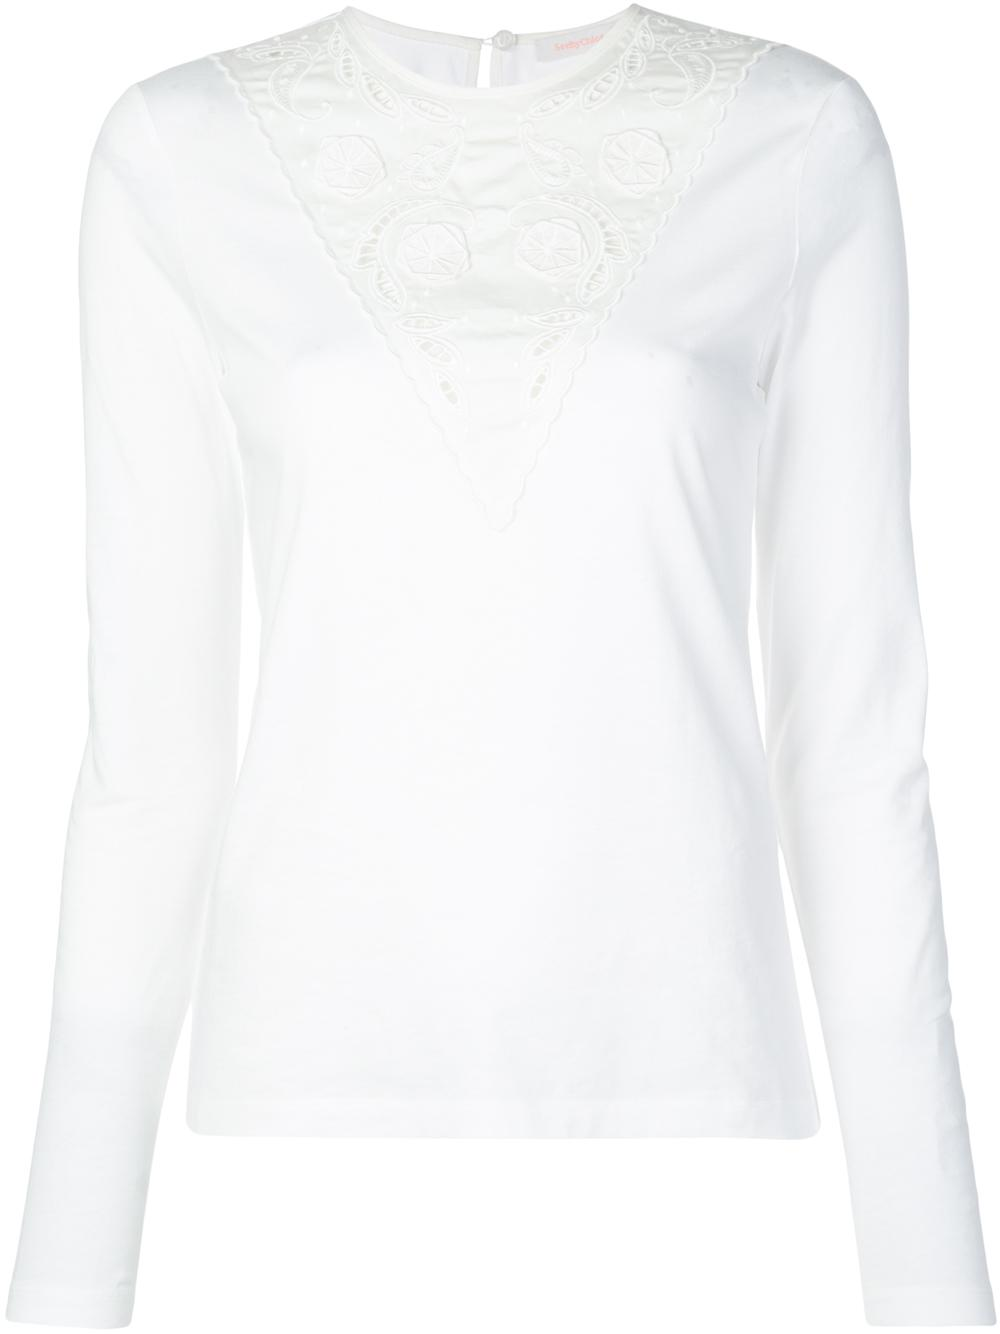 Long Sleeve Knit Top With Neckline Embroider Item # CHC19AJH26081